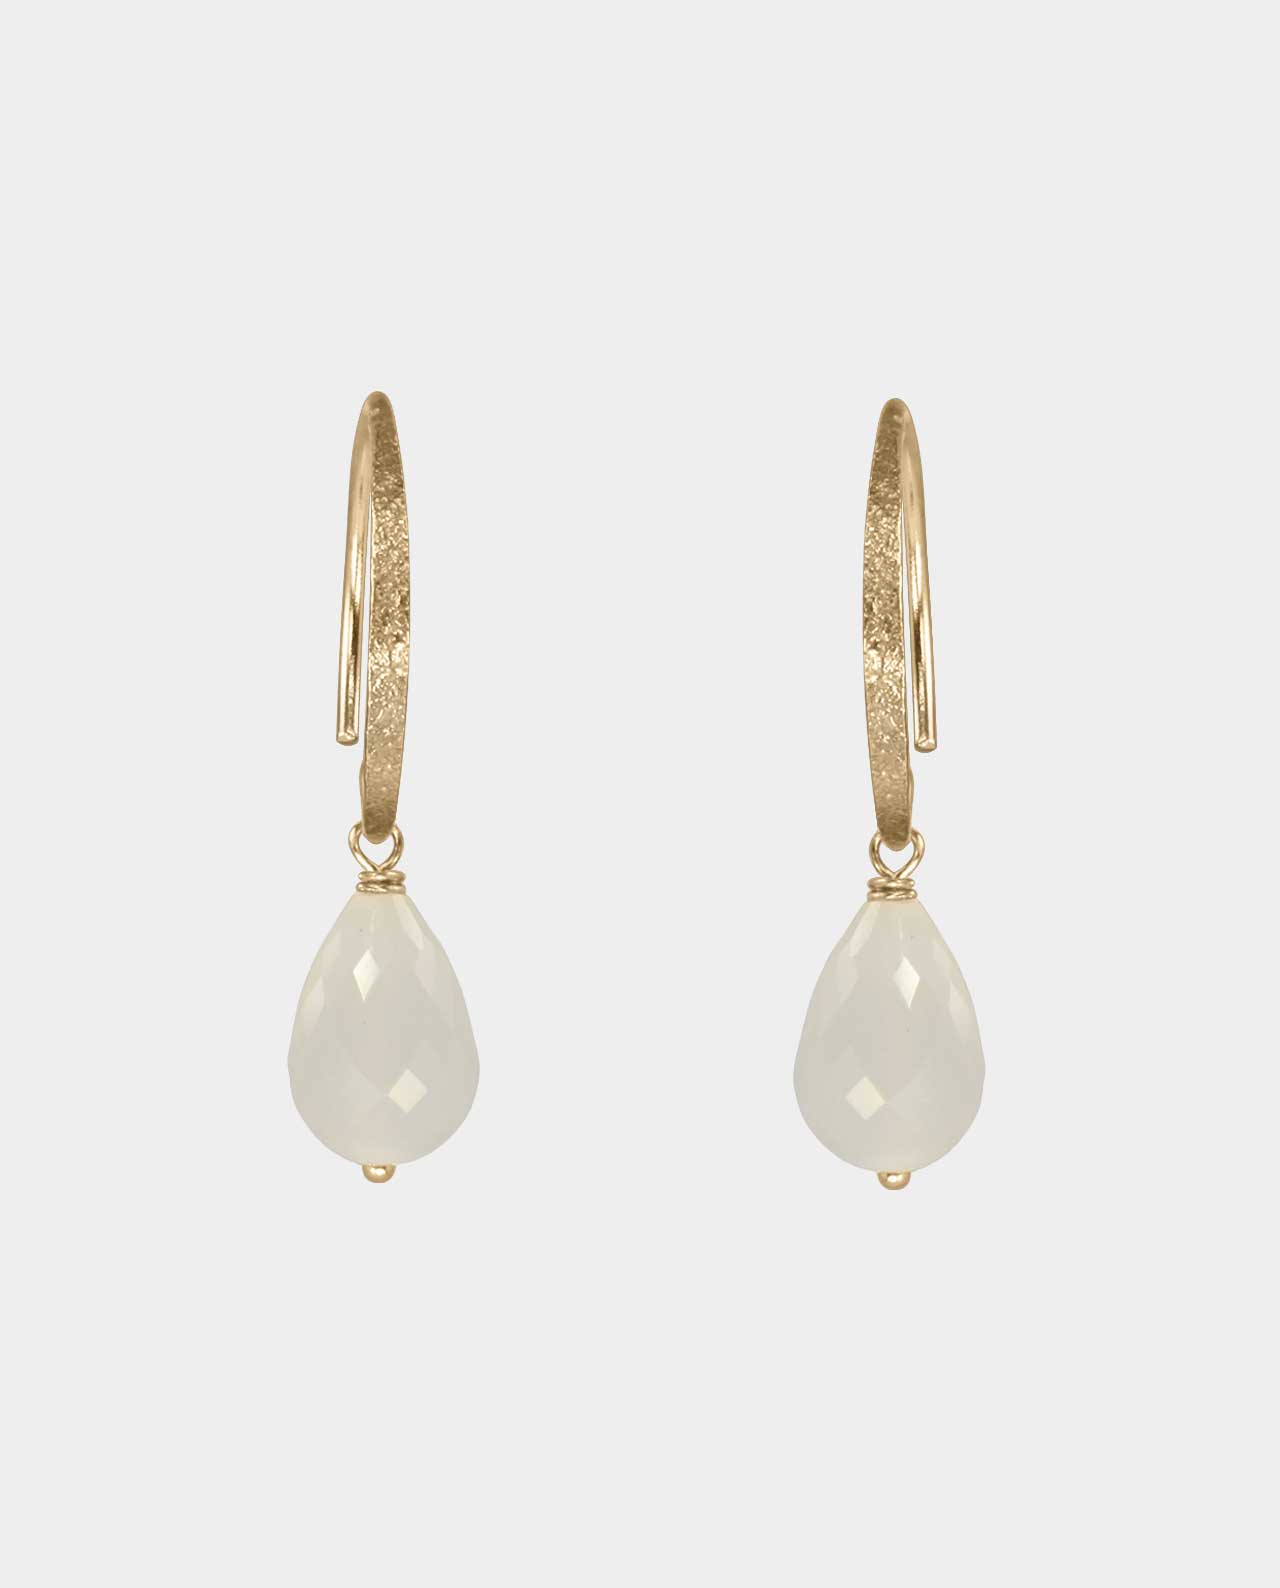 Gold earrings with grey moonstones that play in the light and are the obvious birthday present for the friend who loves beautiful jewelry with colourful gemstones and real gold